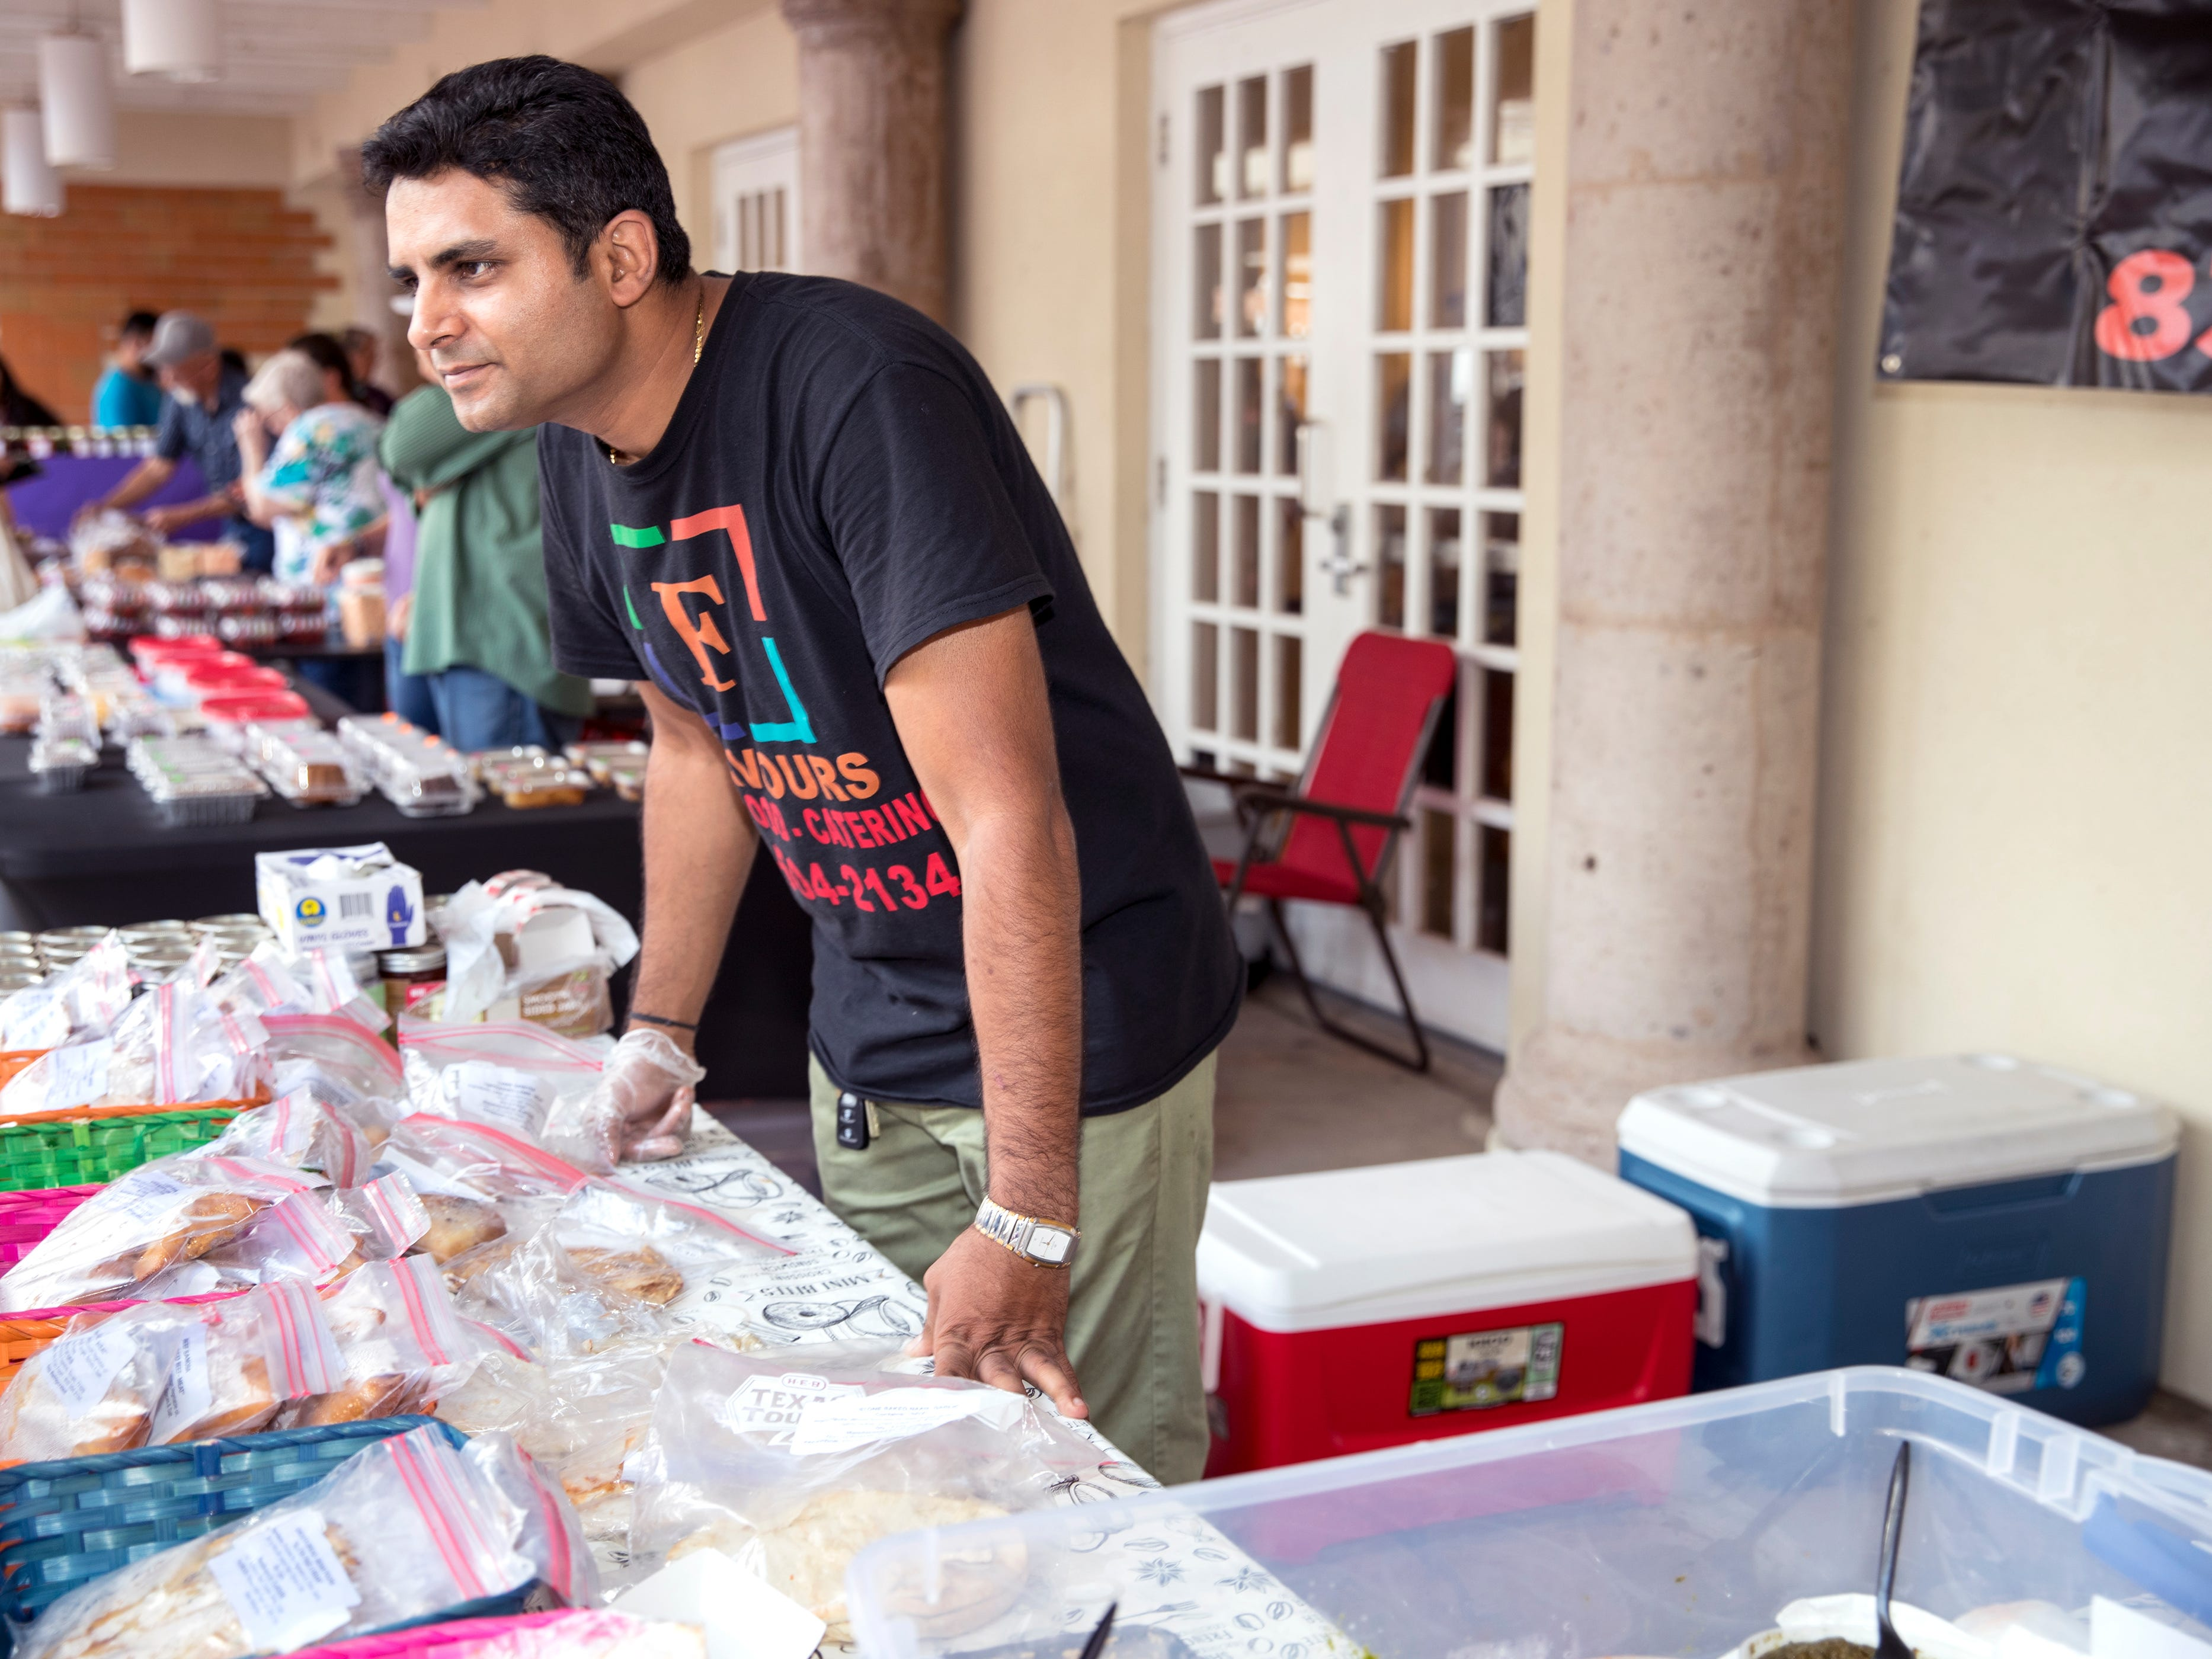 Chakshu Behl, with Flavours, talks with customers at the Corpus Christi Downtown Farmers Market on Wednesday, April 24, 2019. The farmers market offers a variety of seasonal produce, grass fed beef, pastured raised poultry, prepared goods such as roasted coffee, sweets and preserves and baked goods. It is open weekly on Wednesday from 5 to 8 pm at 100 N. Shoreline Blvd.